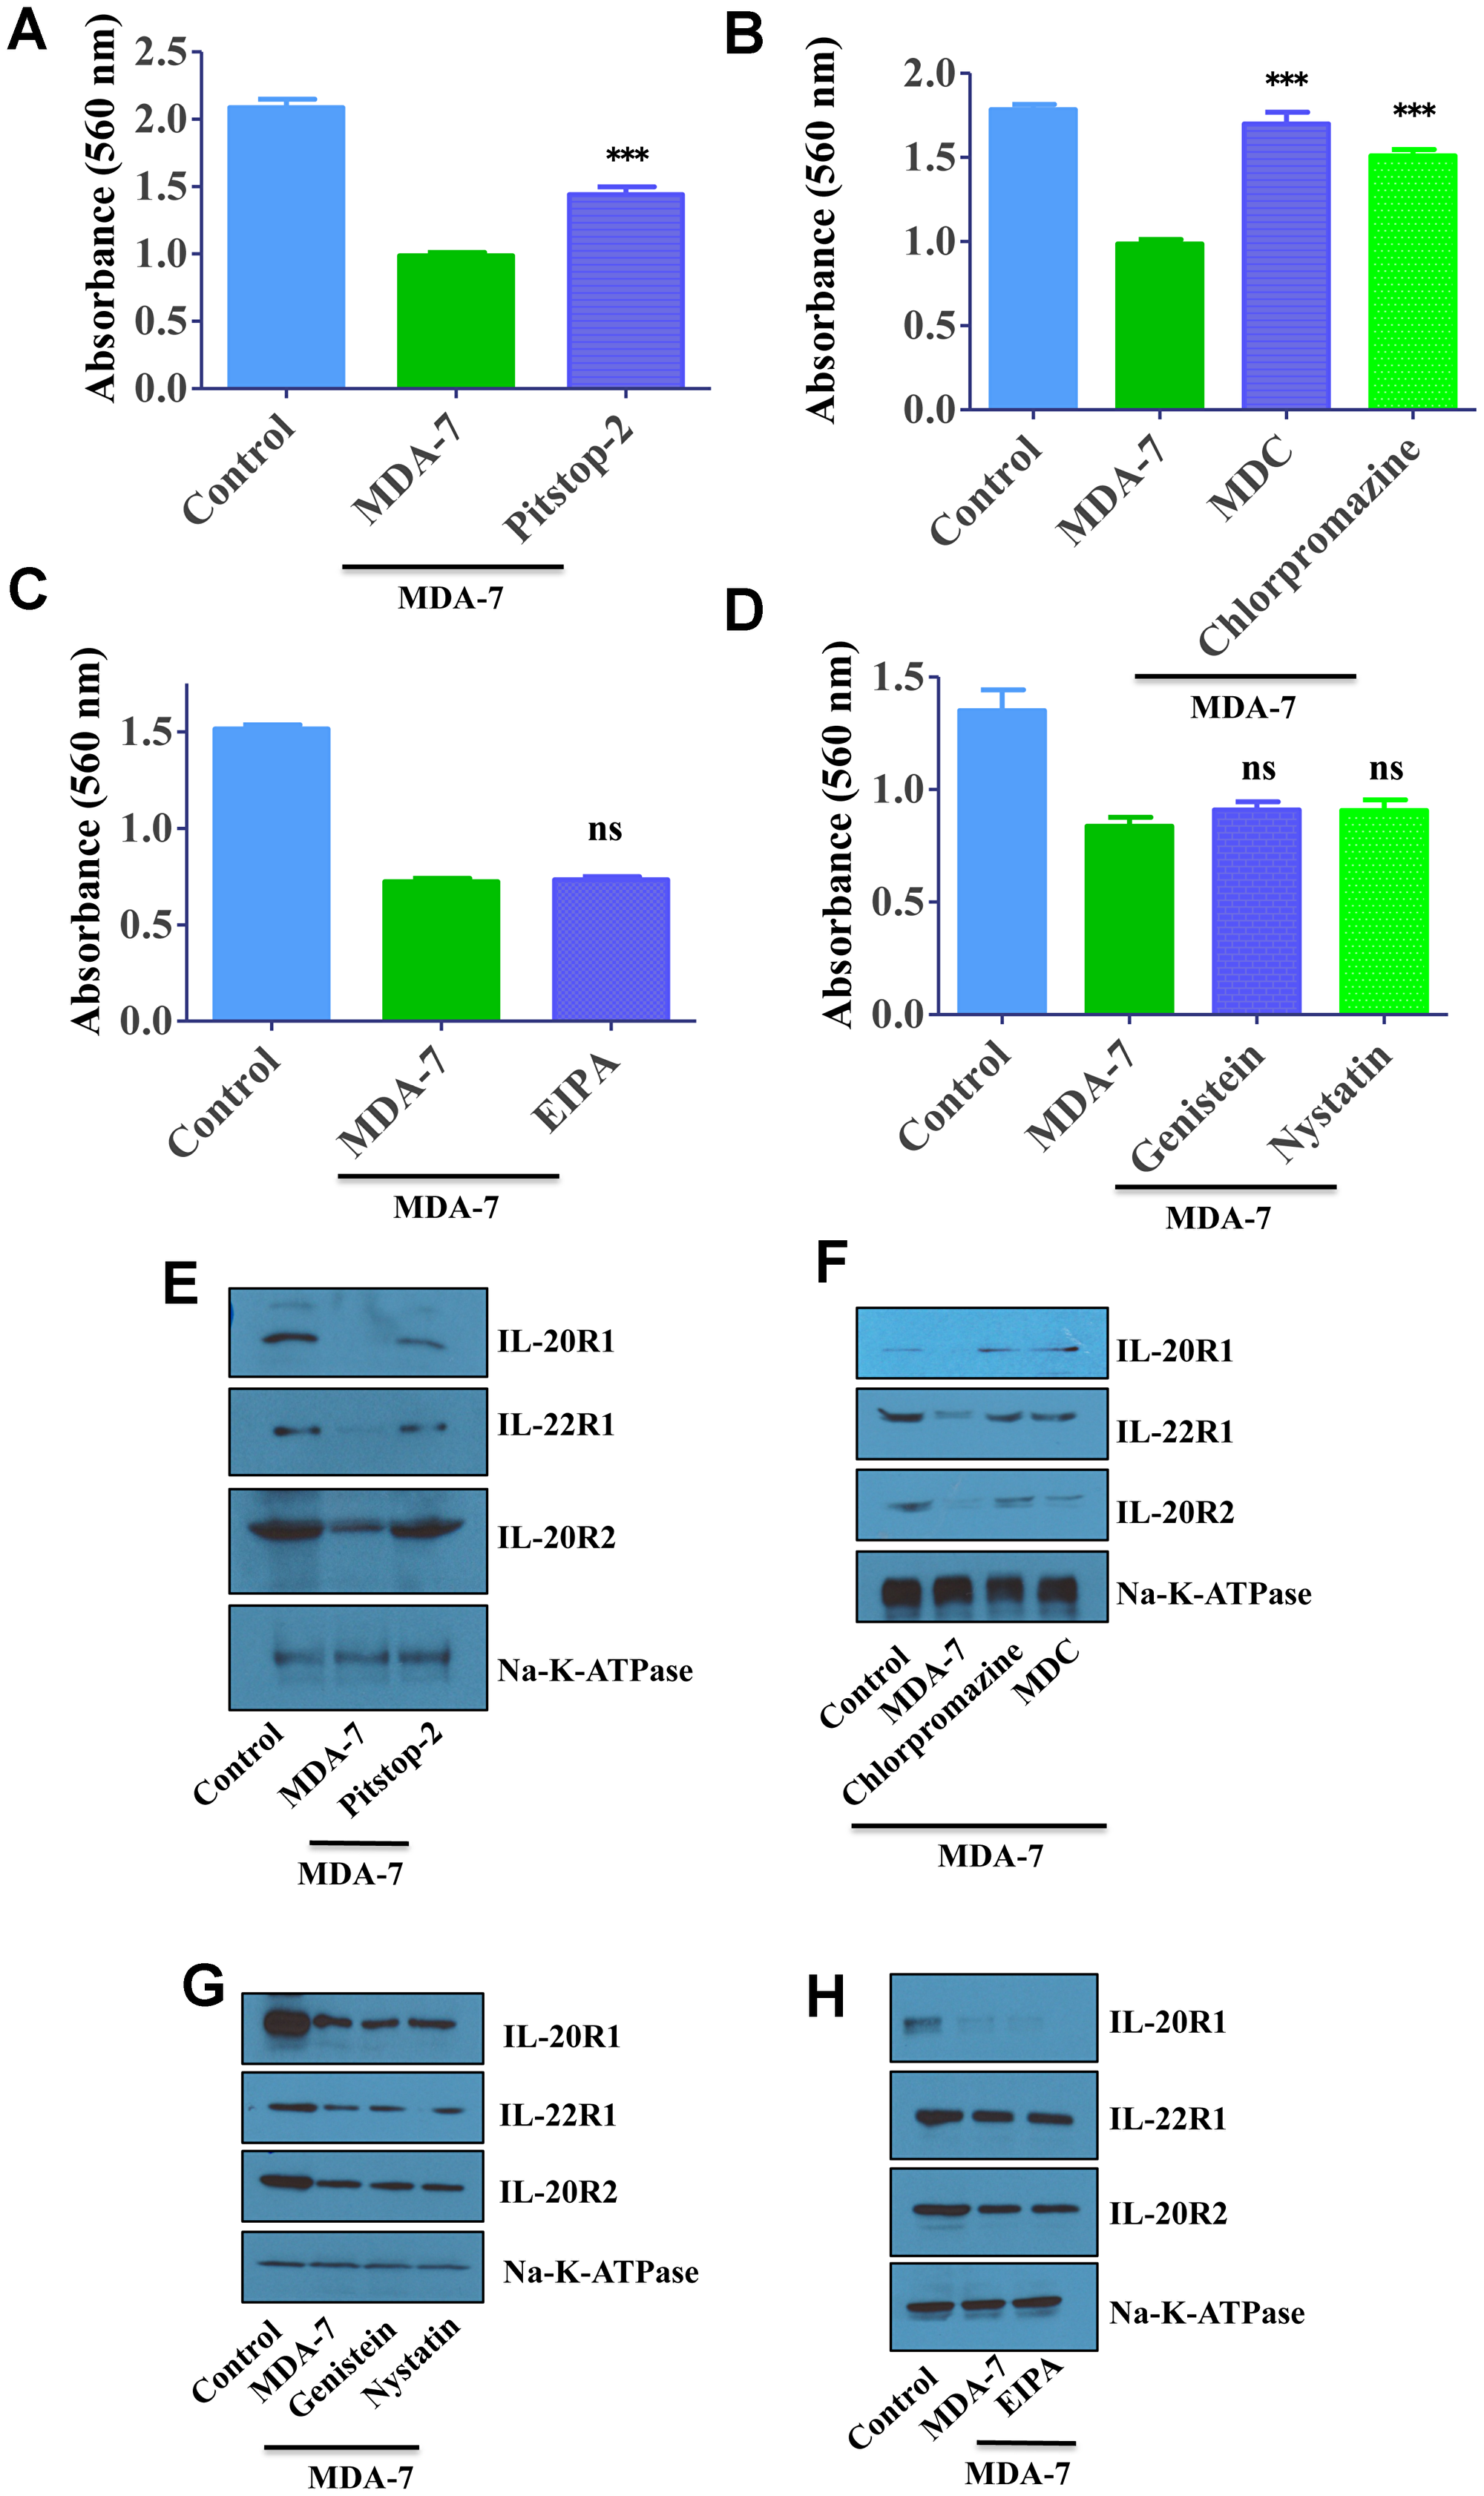 MDA-7/IL-24 uses the clathrin-mediated endocytic (CME) pathway.